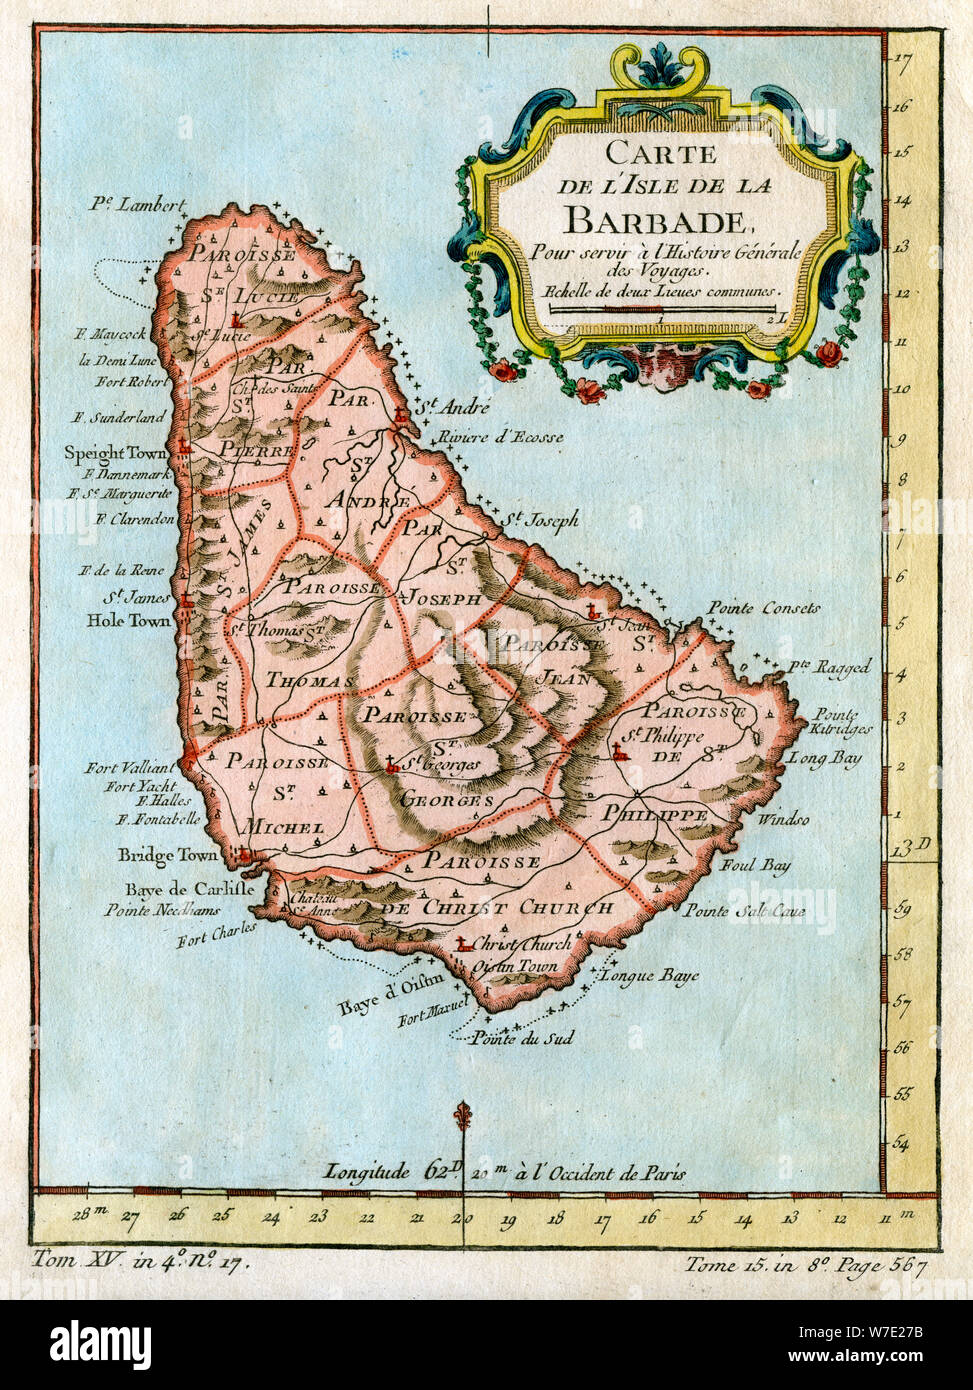 Map of Barbados, c1758. Artist: Unknown Stock Photo